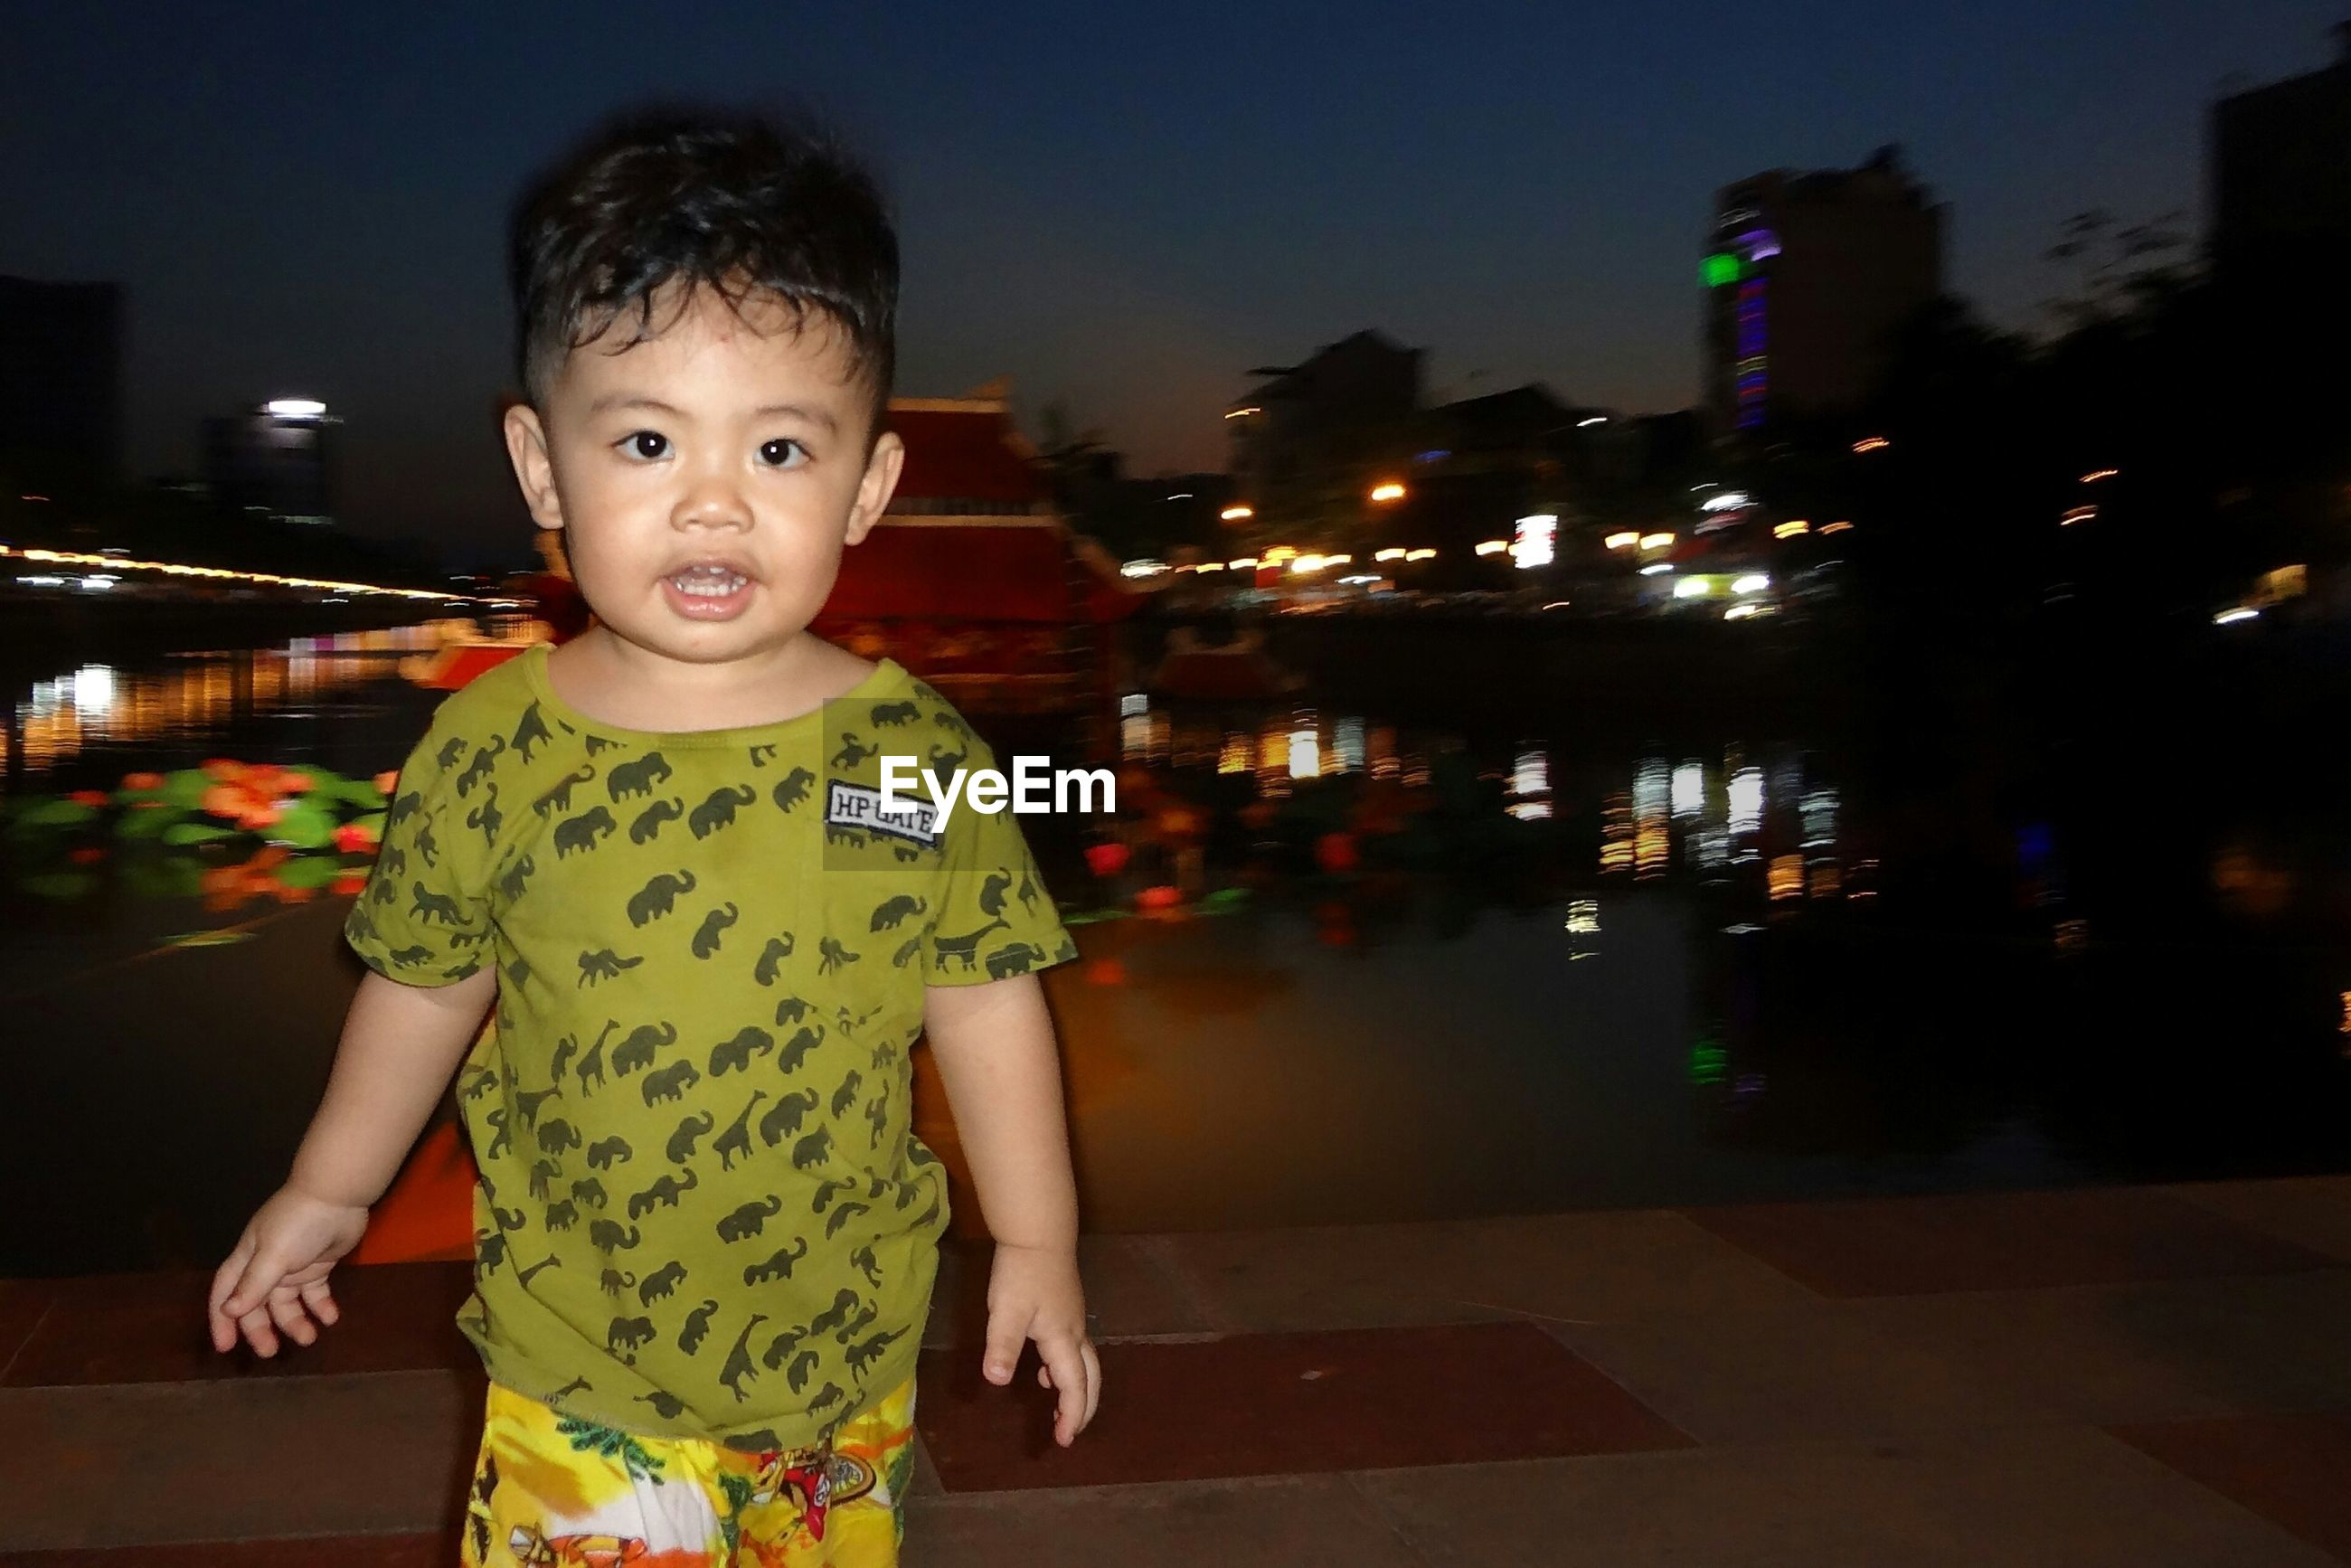 Portrait of a boy smiling outdoors at night